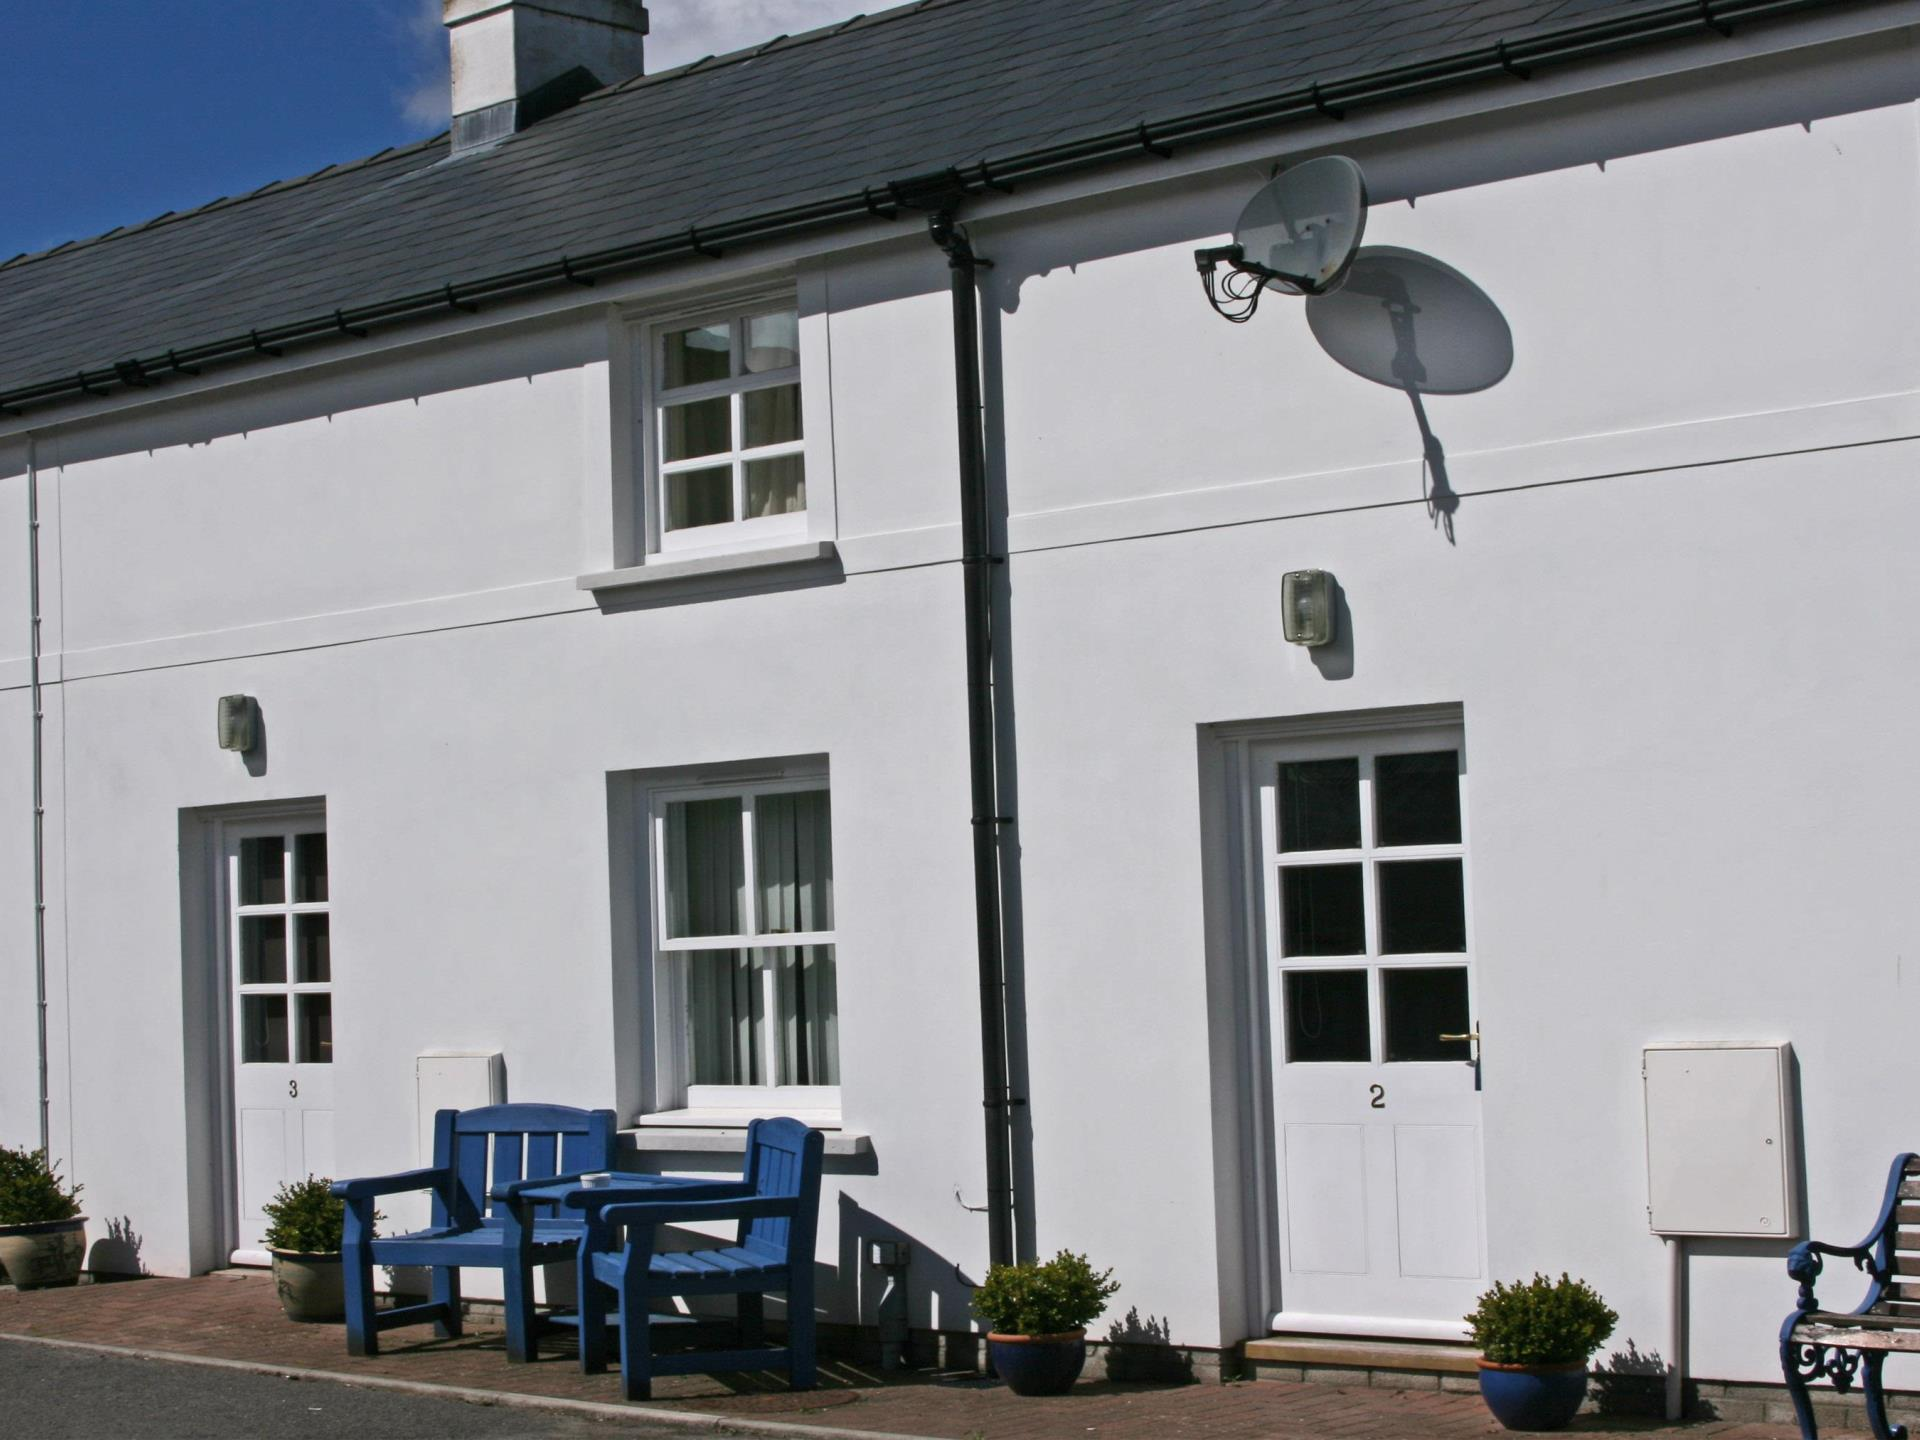 Gremlin Lodge Cottages